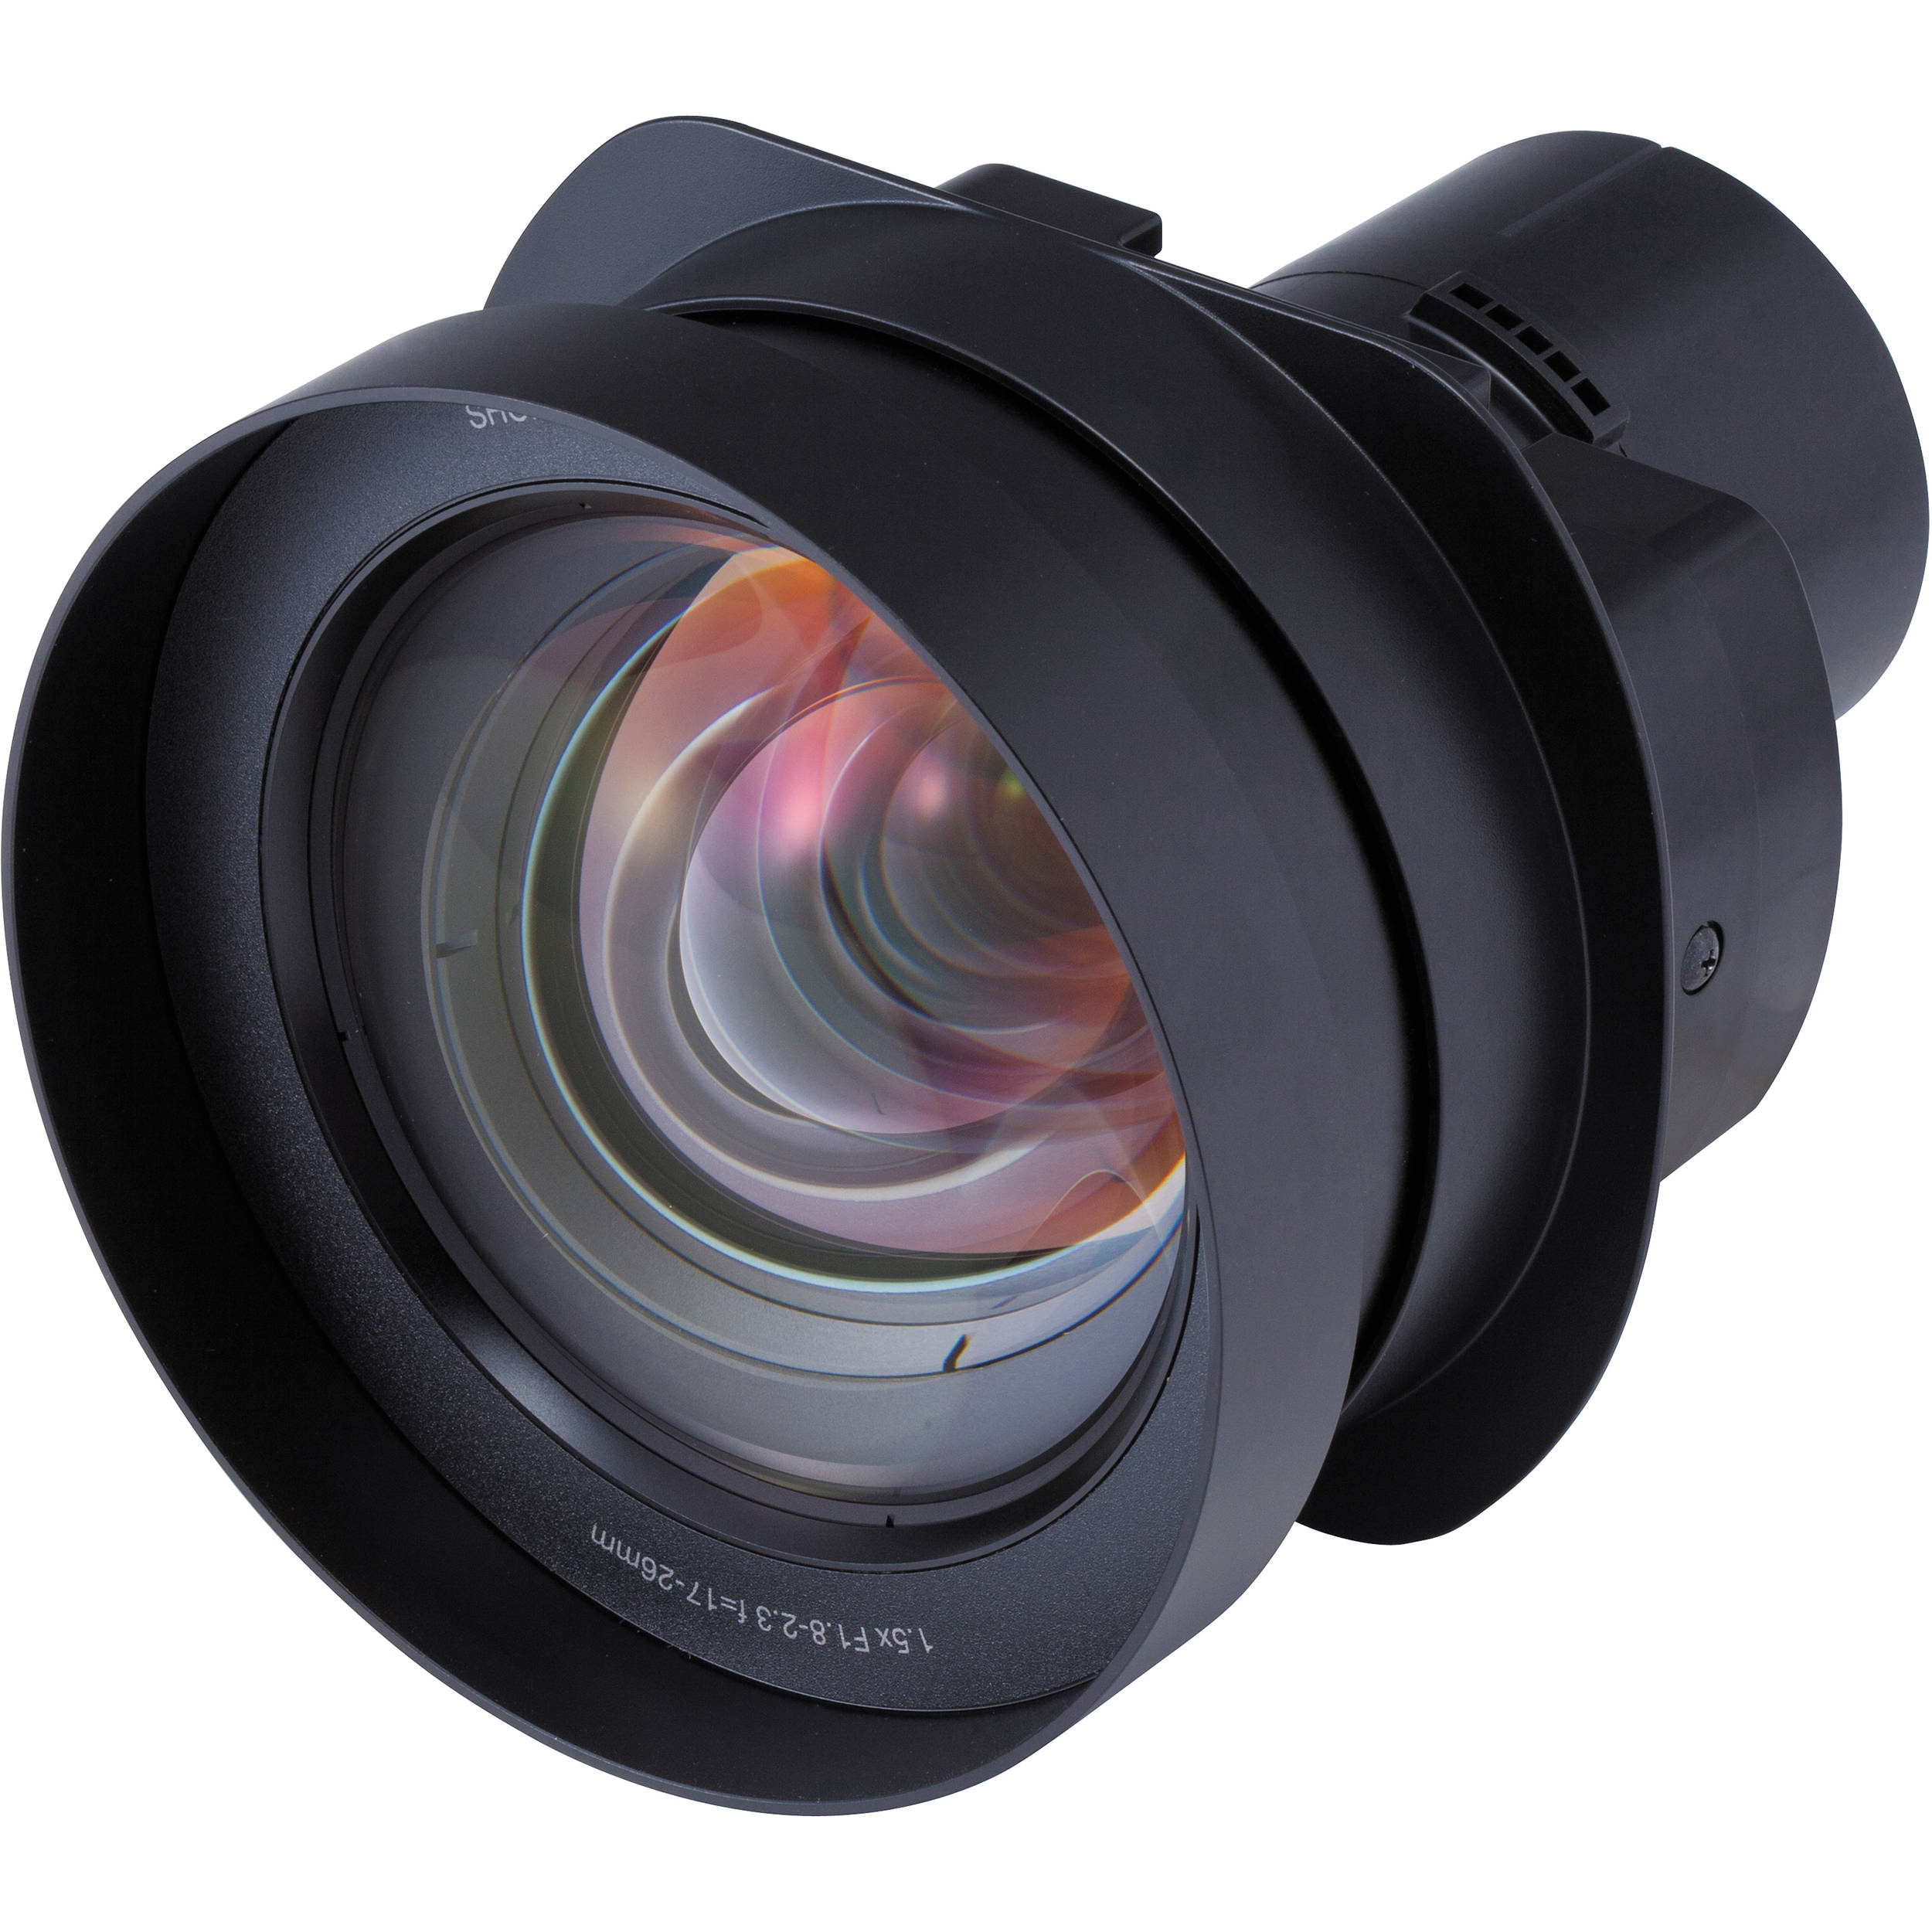 Https C Product 1025772 Reg Download Image Diagram Of Tamron Lens Pc Android Iphone And Ipad Hitachi Sl 902 Sl902 Short Throw 1021230